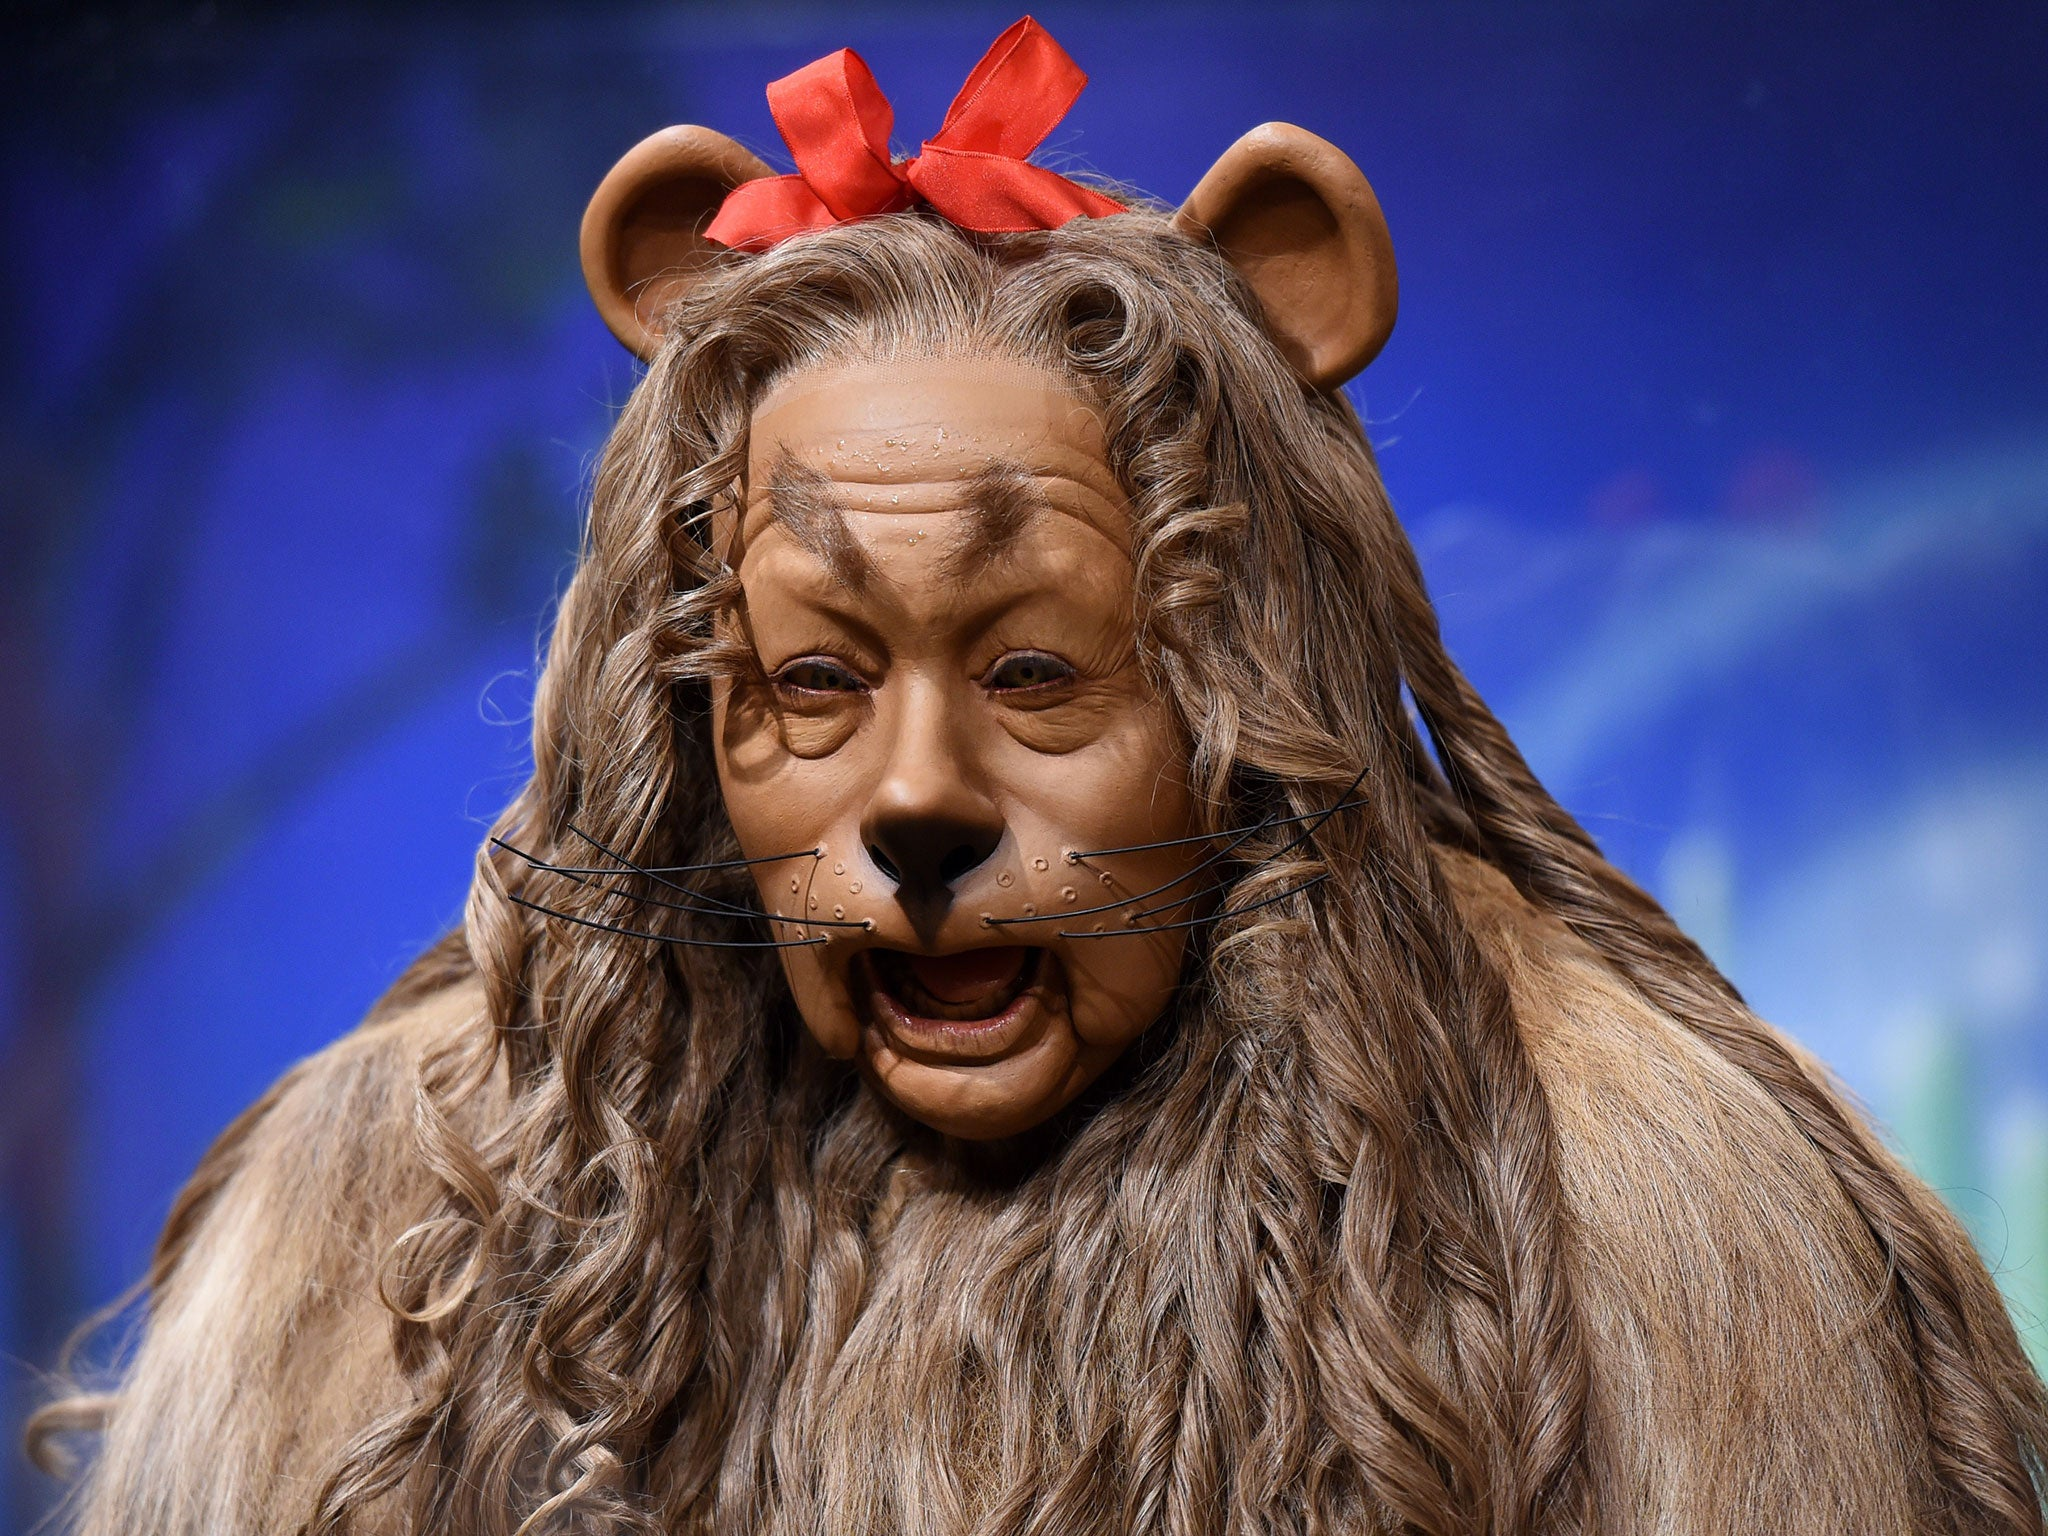 Real cowardly lion costume - photo#16